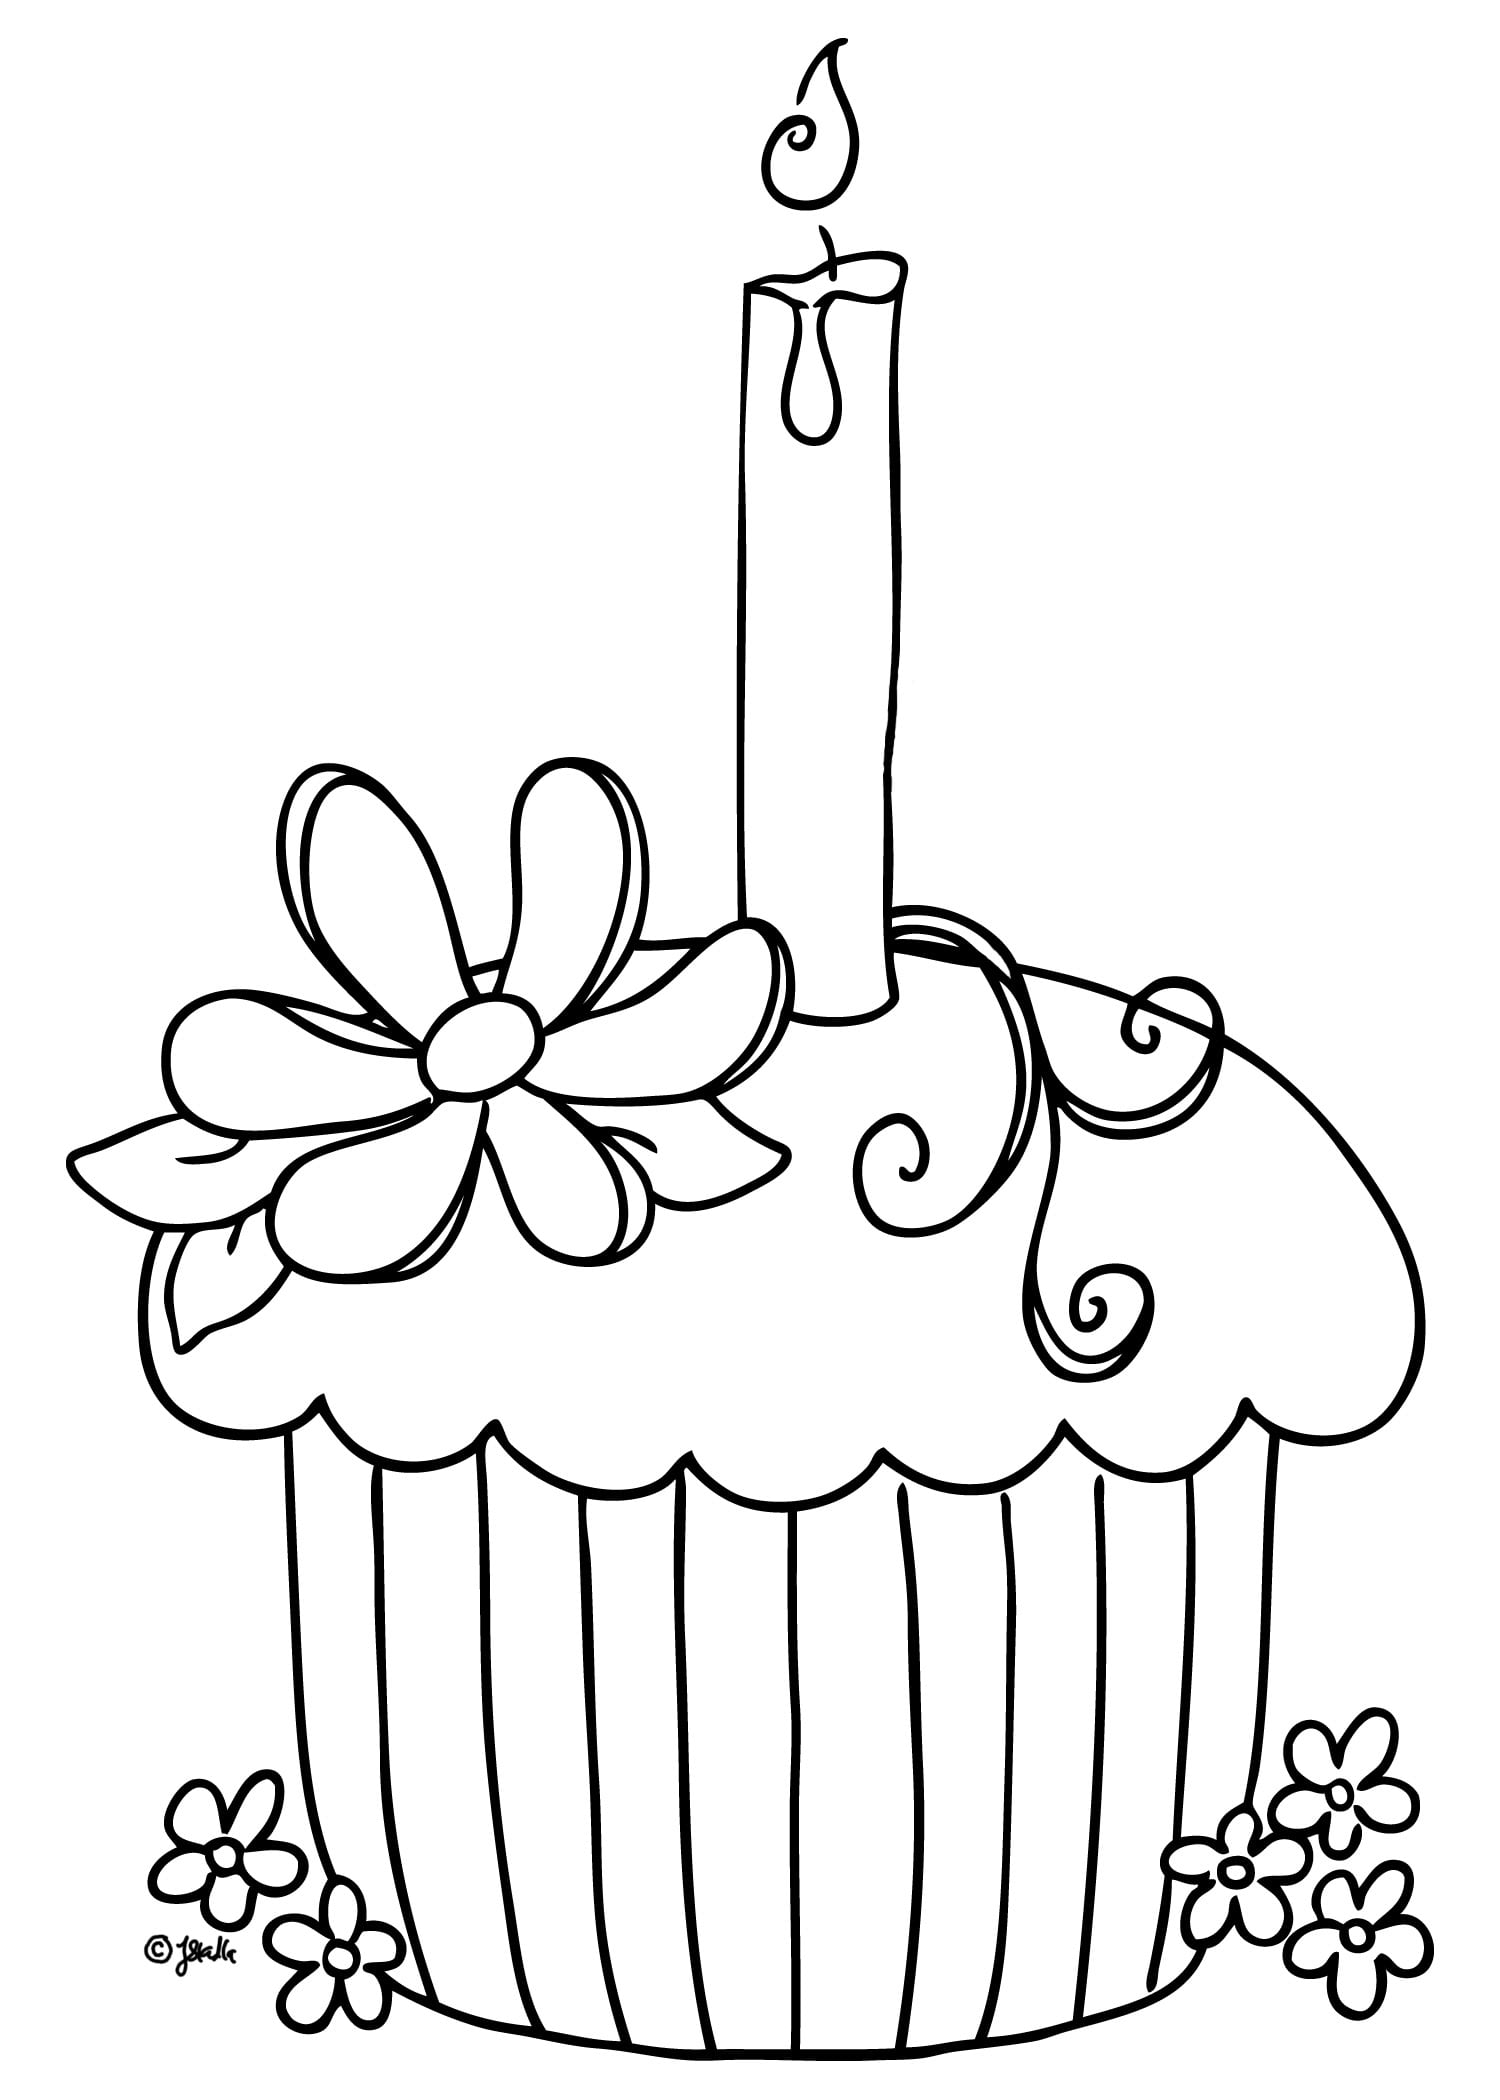 Free Printable Cupcake Coloring Pages For Kids Inside